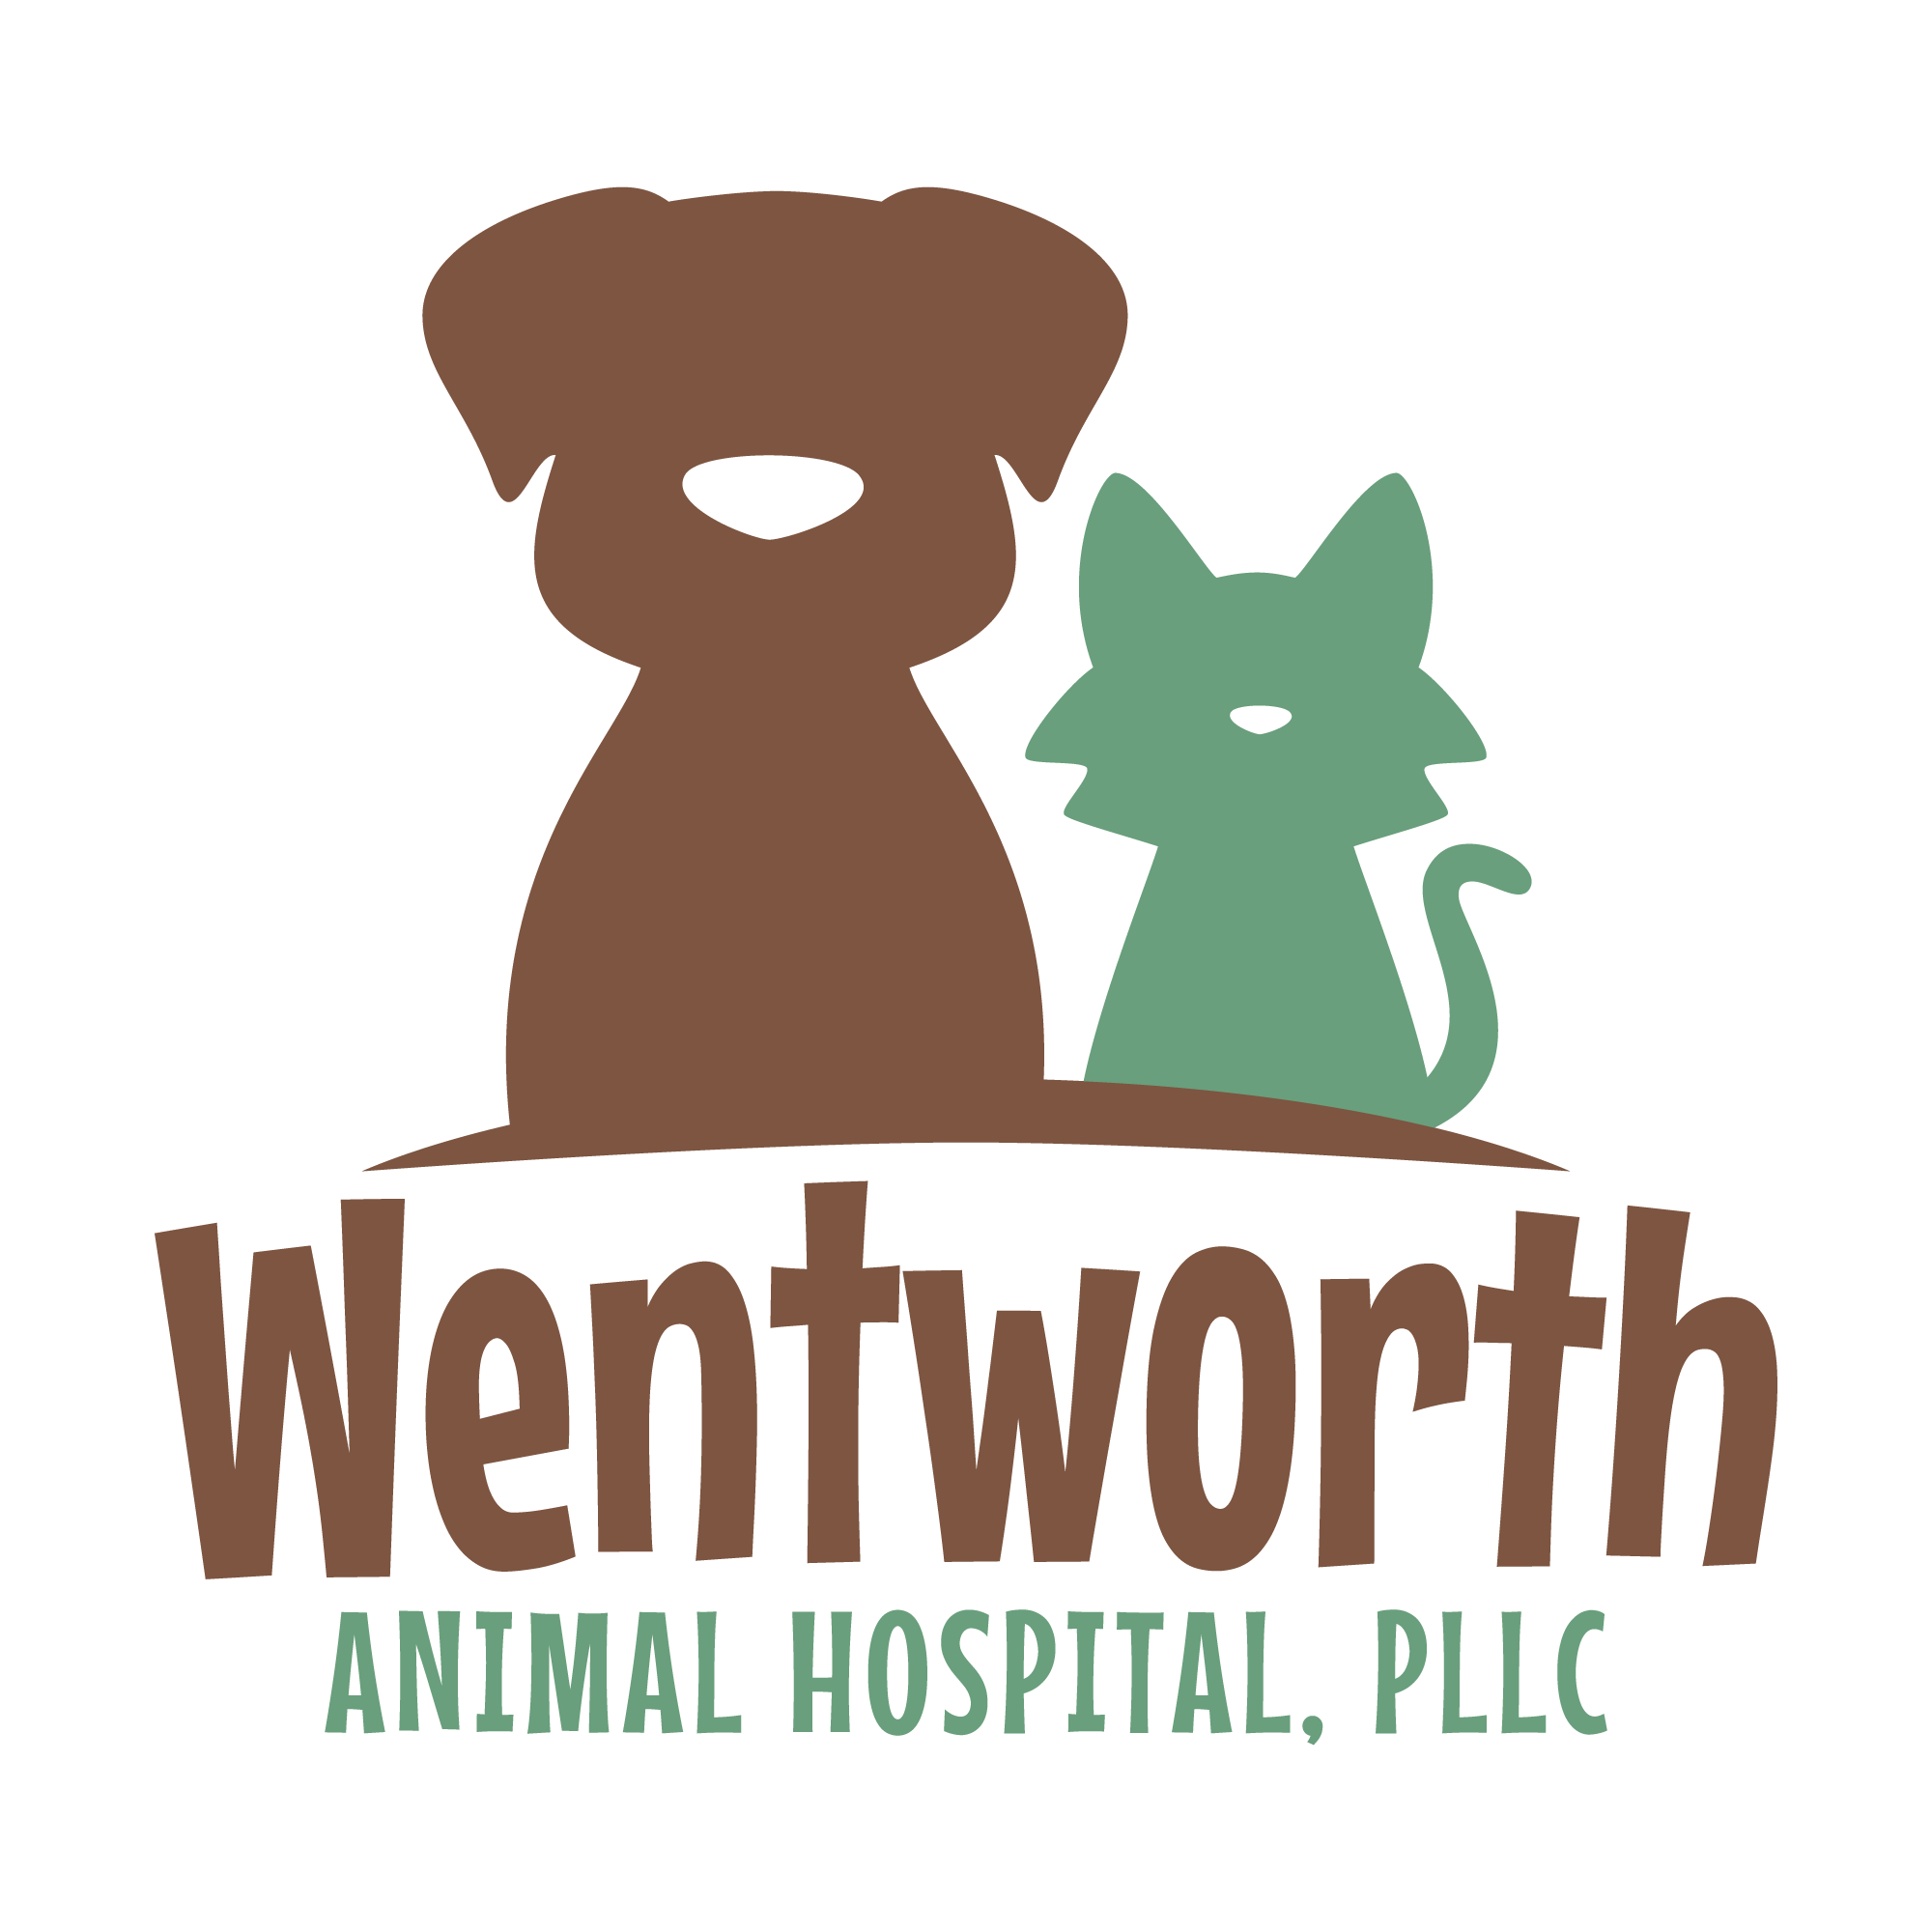 Veterinarian clipart service animal. Wentworth hospital vet services